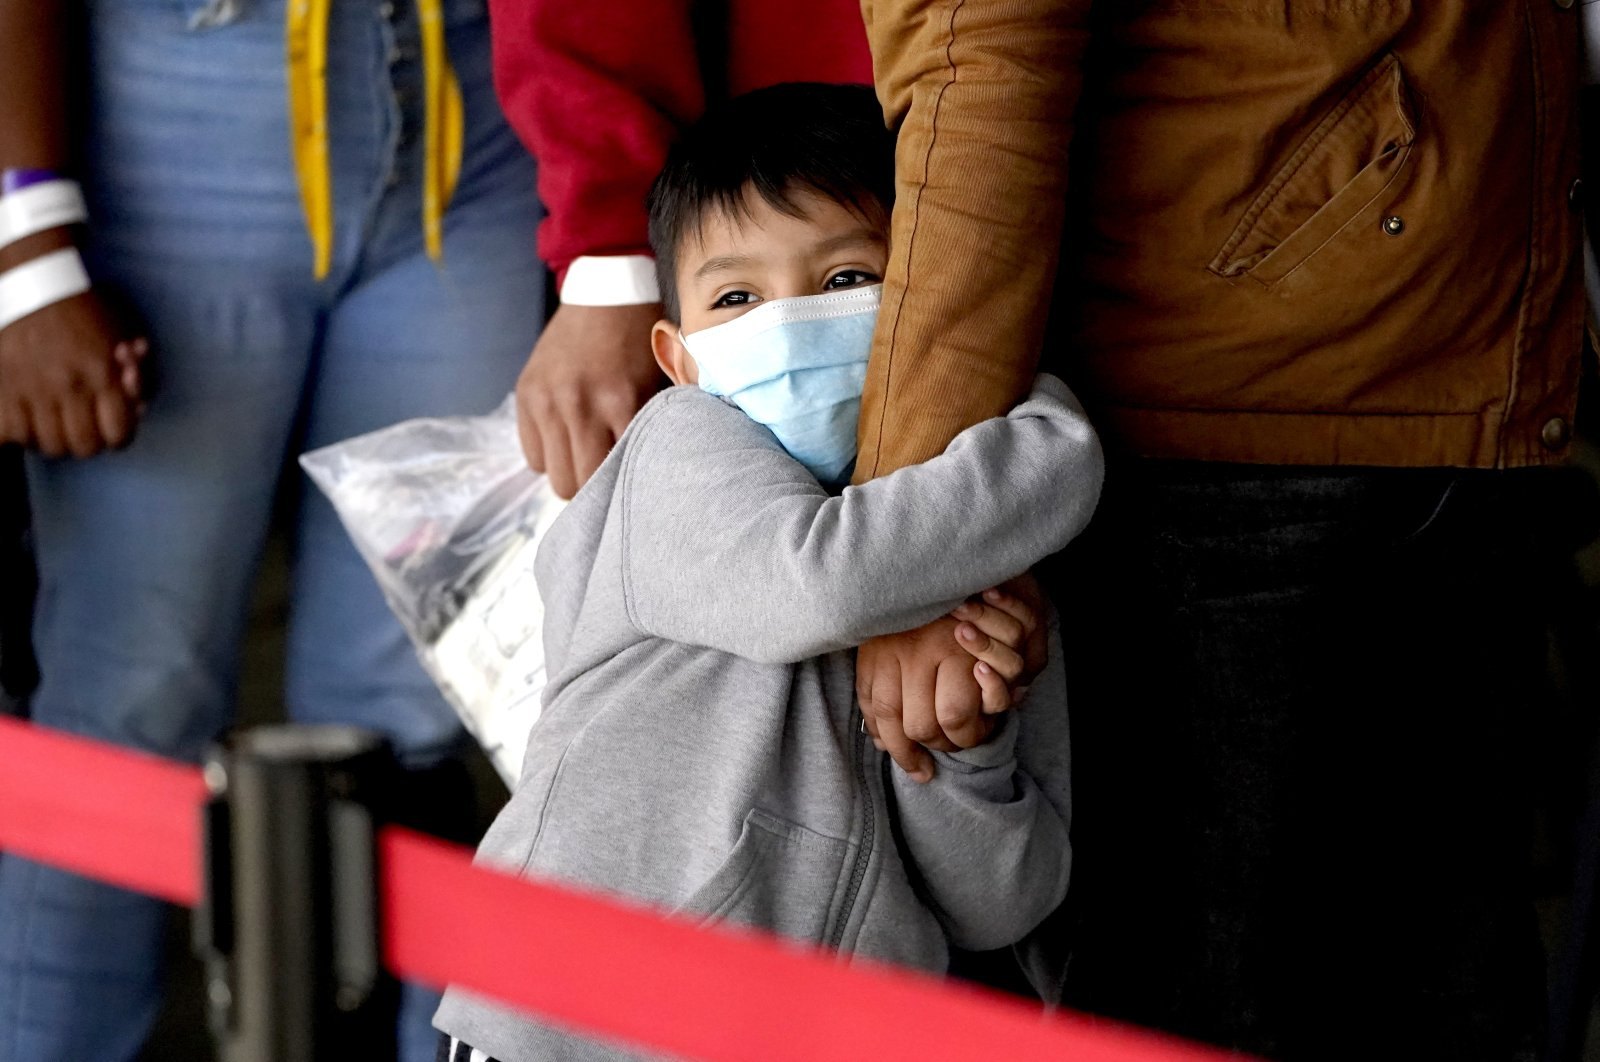 A migrant child holds onto a woman's arm as they wait to be processed by a humanitarian group after being released from U.S. Customs and Border Protection custody at a bus station, in Brownsville, Texas, U.S, Wednesday, March 17, 2021. (AP Photo)